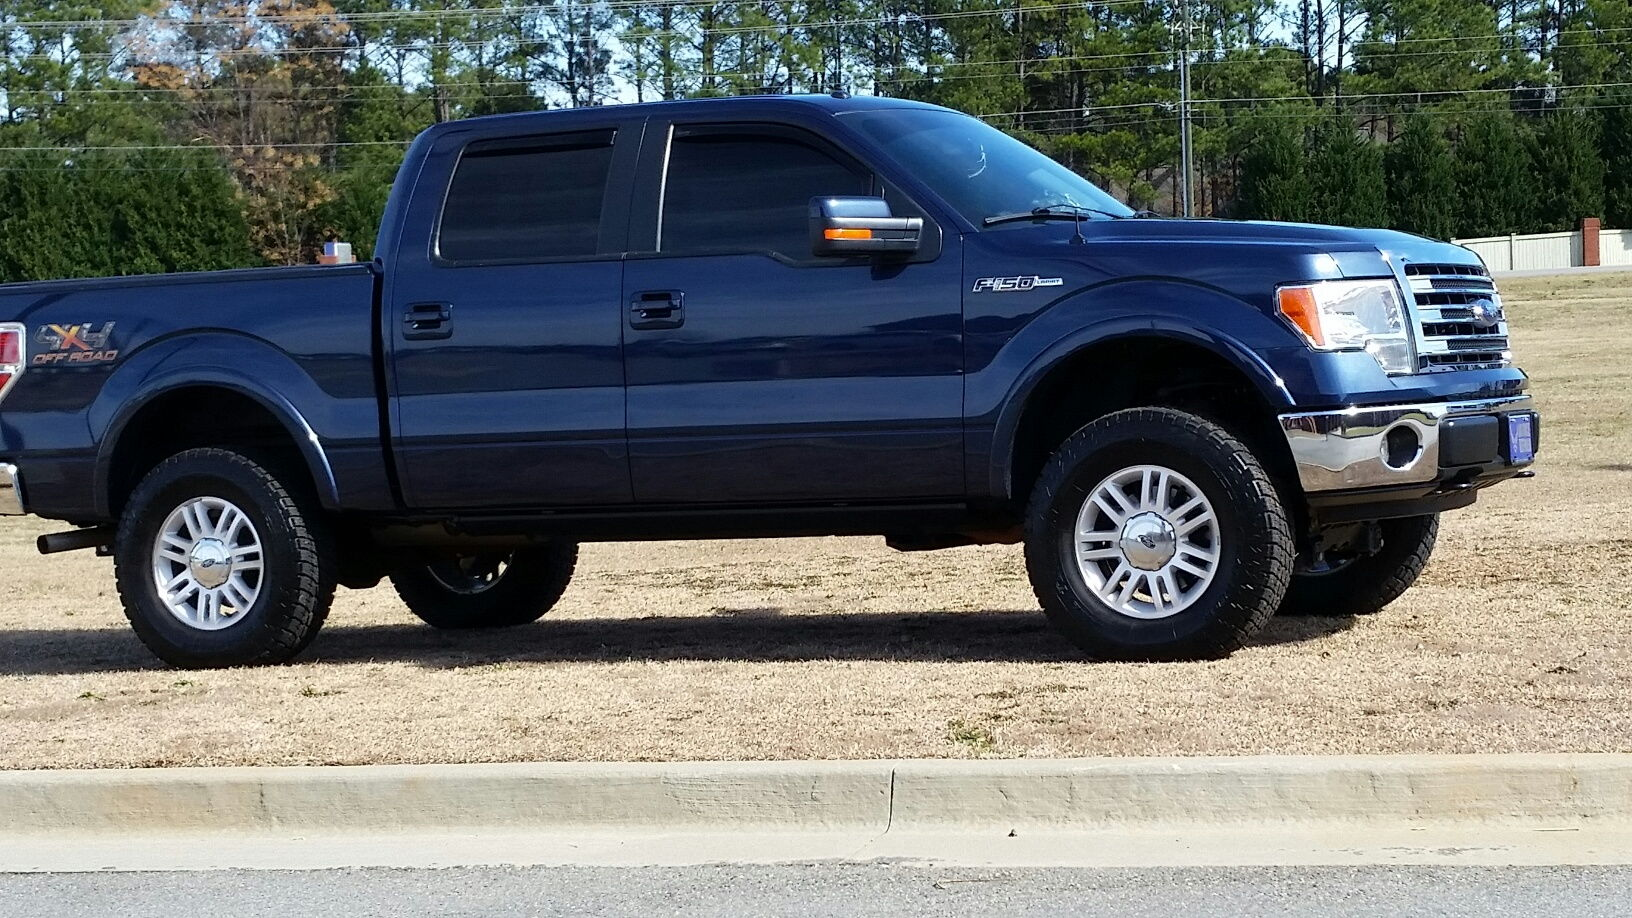 lift tire size questions ford f150 forum community of ford truck fans. Black Bedroom Furniture Sets. Home Design Ideas